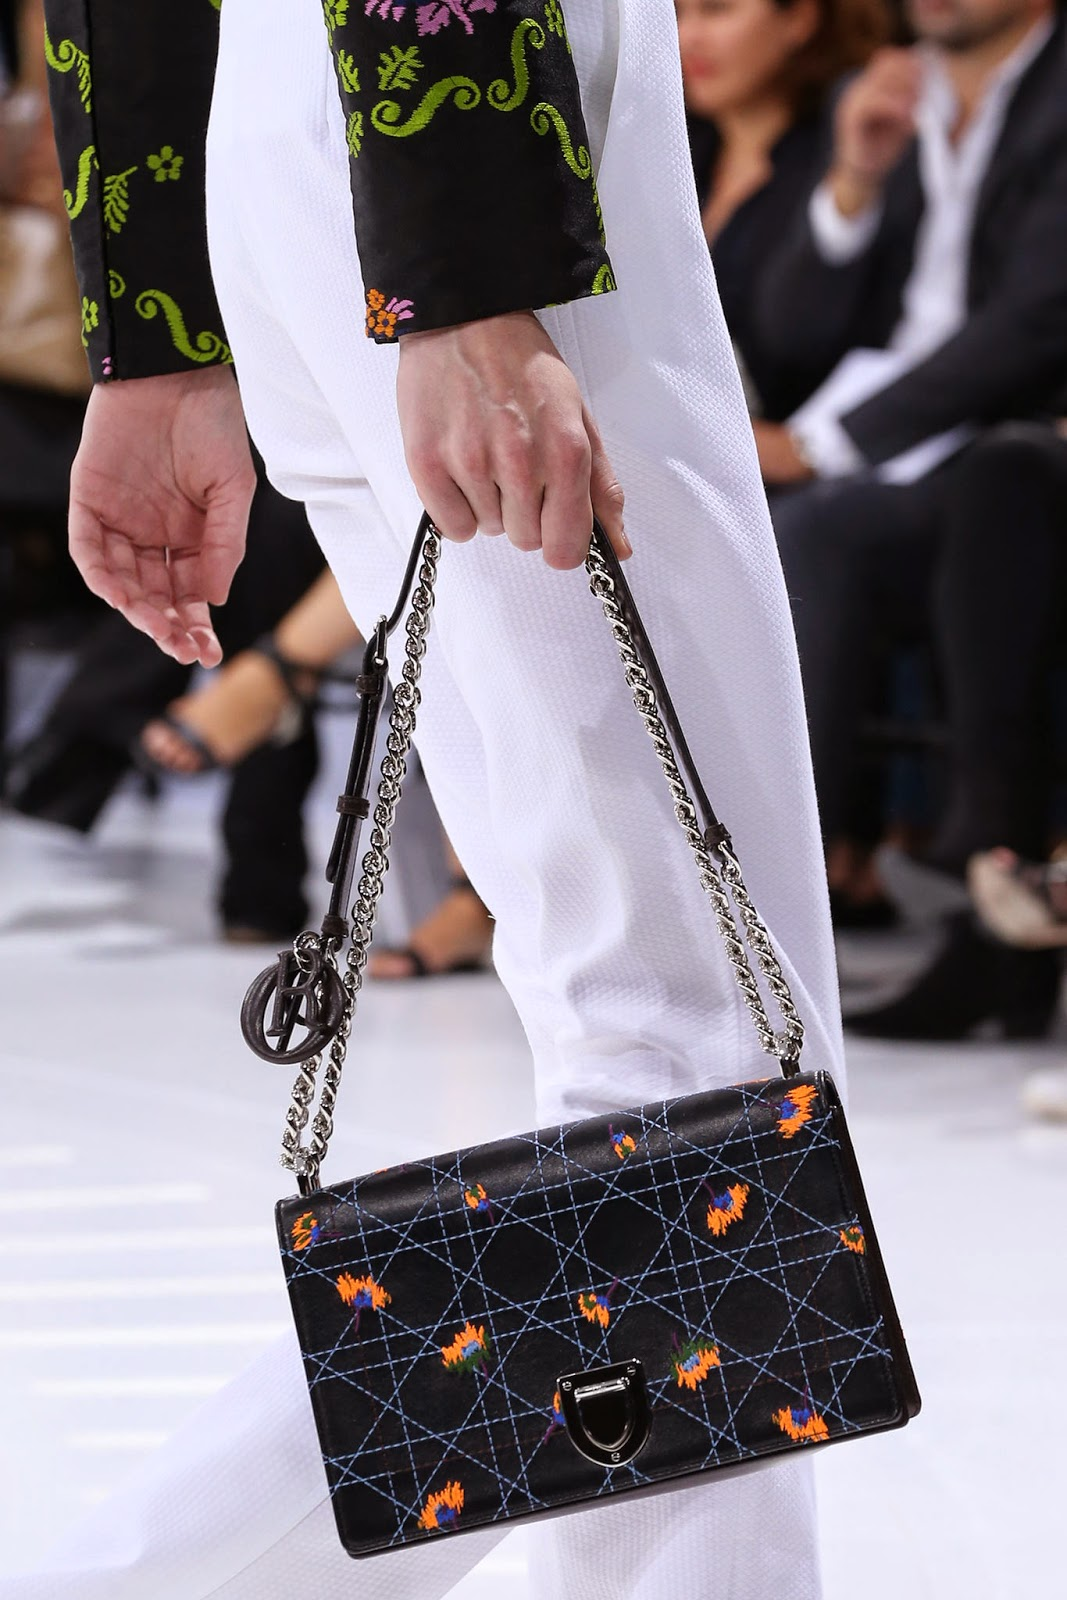 #PFW: Dior Spring/Summer 15 Bags Report